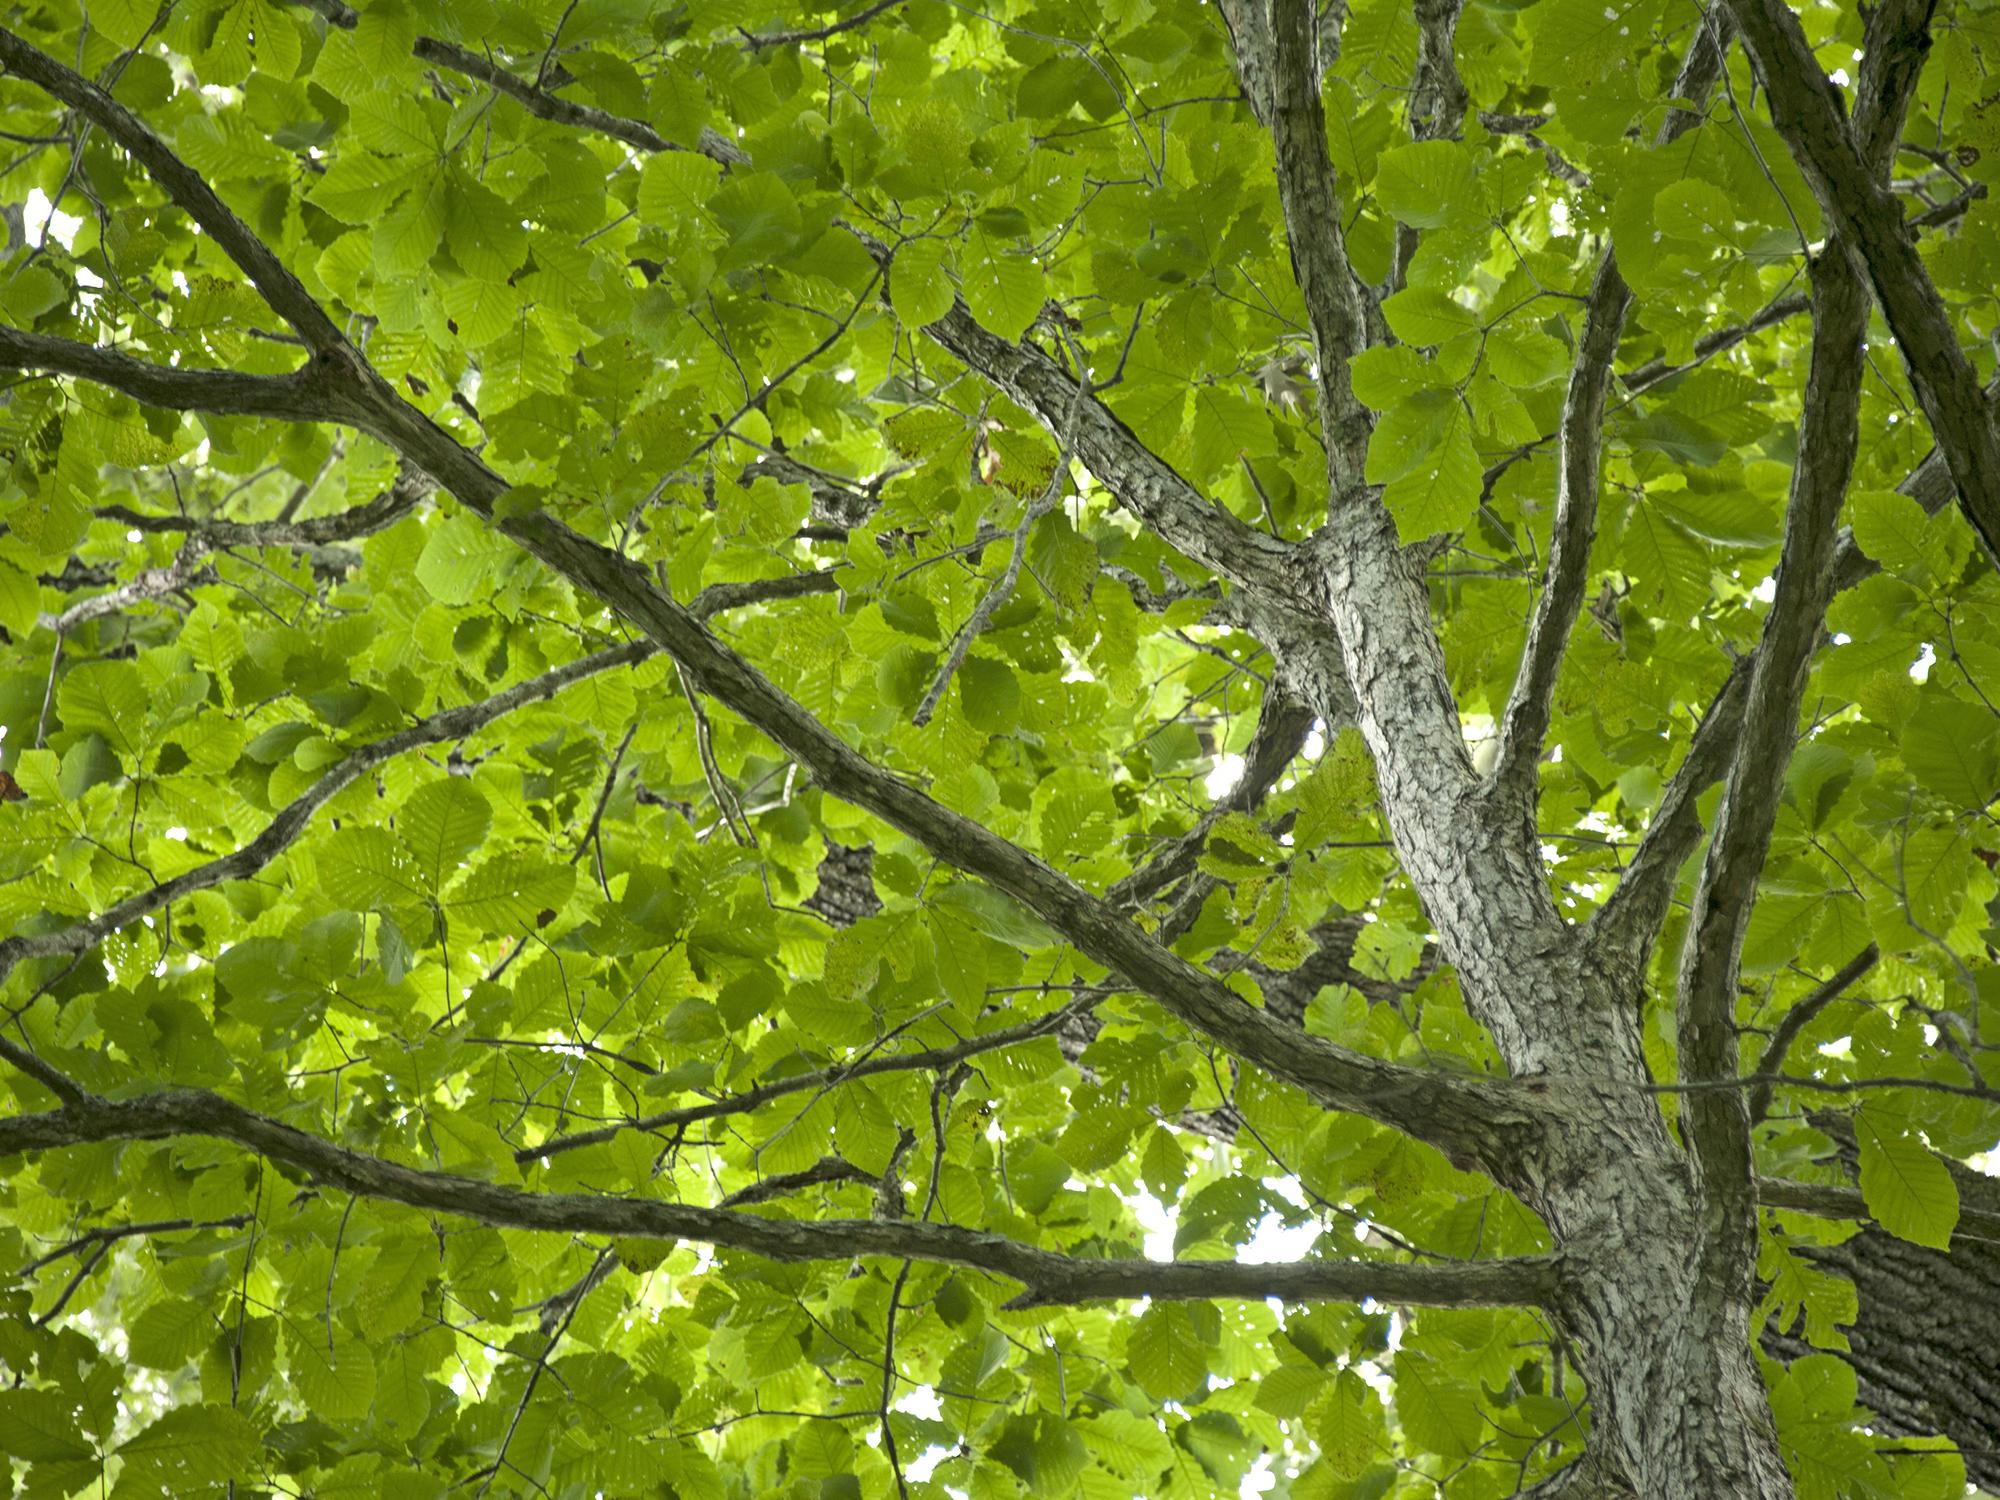 The green leaves of an oak tree create a canopy overhead while the thick, rough brown bark covering the leaves and branches dominates the right side of the photograph.